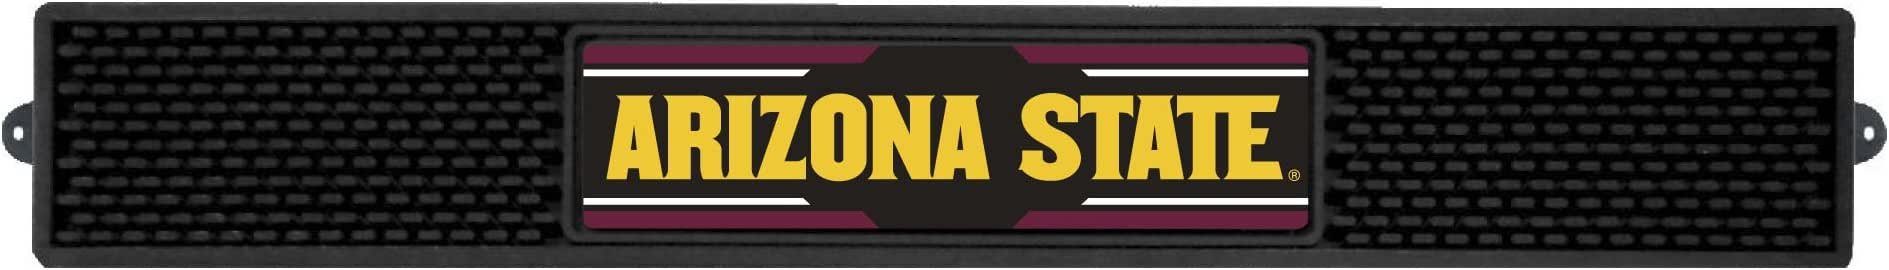 Team Color FANMATS 20535 Arizona State Drink Mat 3.25x24